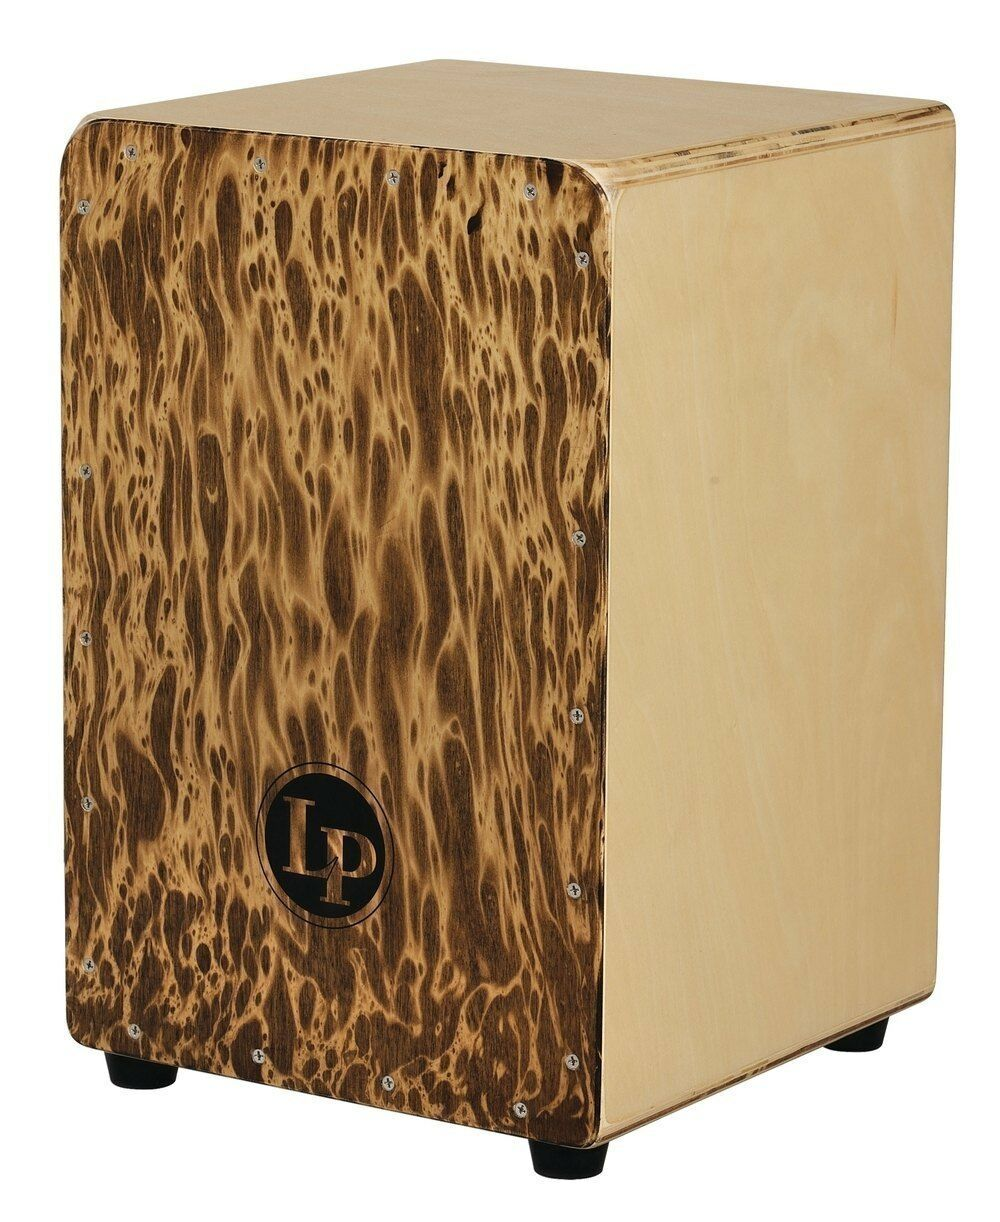 Latin Percussion Cajon Aspire Aspire Aspire Accents Havana Café Latin Percussion 3bbf13